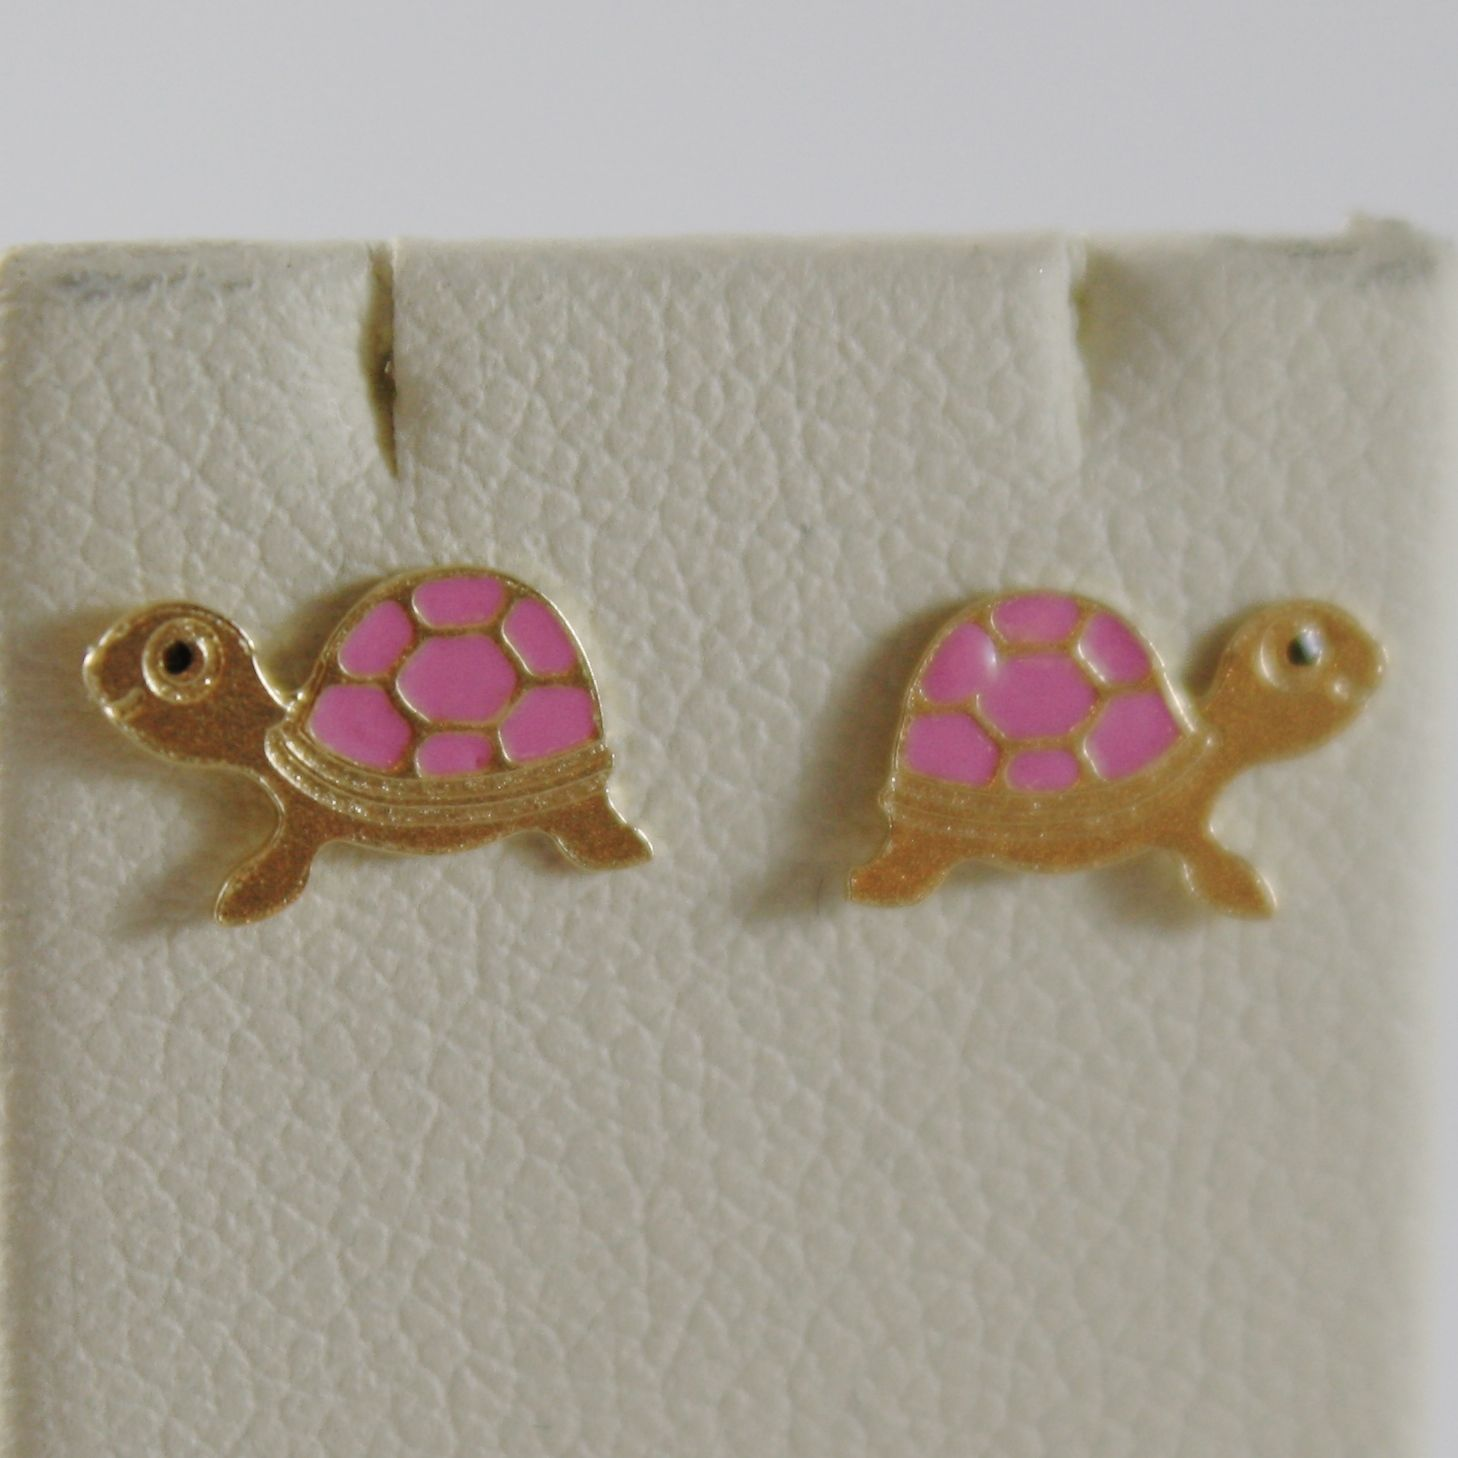 18K YELLOW GOLD CHILD PINK TURTLE MINI EARRINGS GLAZED, FLAT, MADE IN ITALY